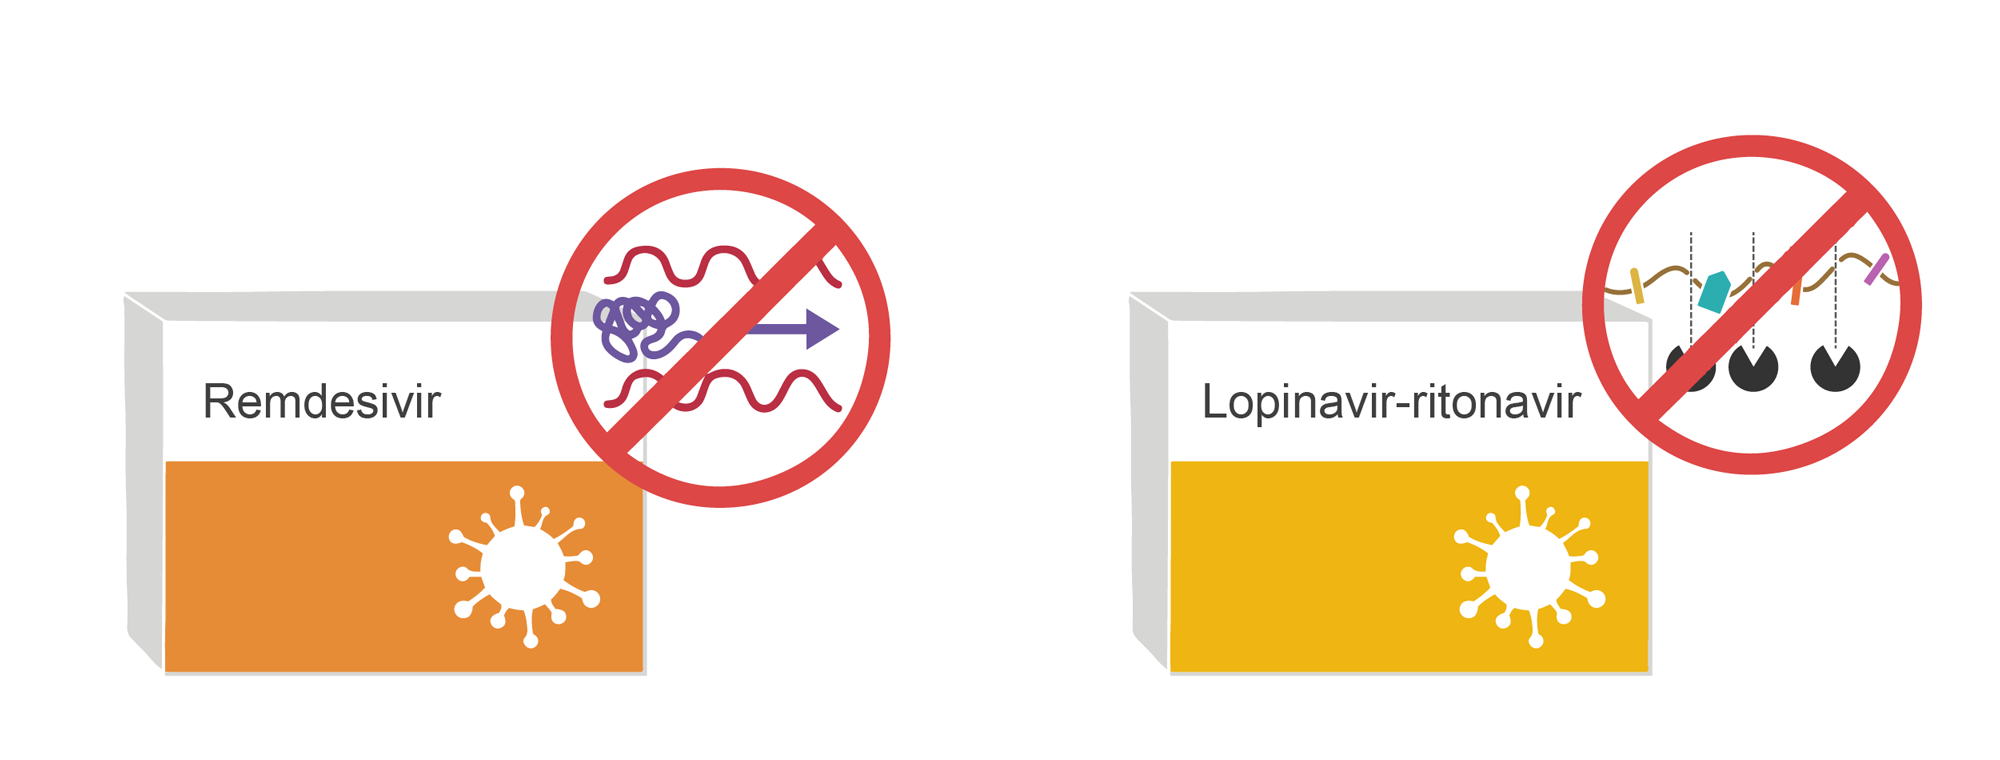 Treatments for SARS-Cov-2. Two boxes of antivirals (Remdesivir and Lopinavir) with mechanism of action shown. Illustration.